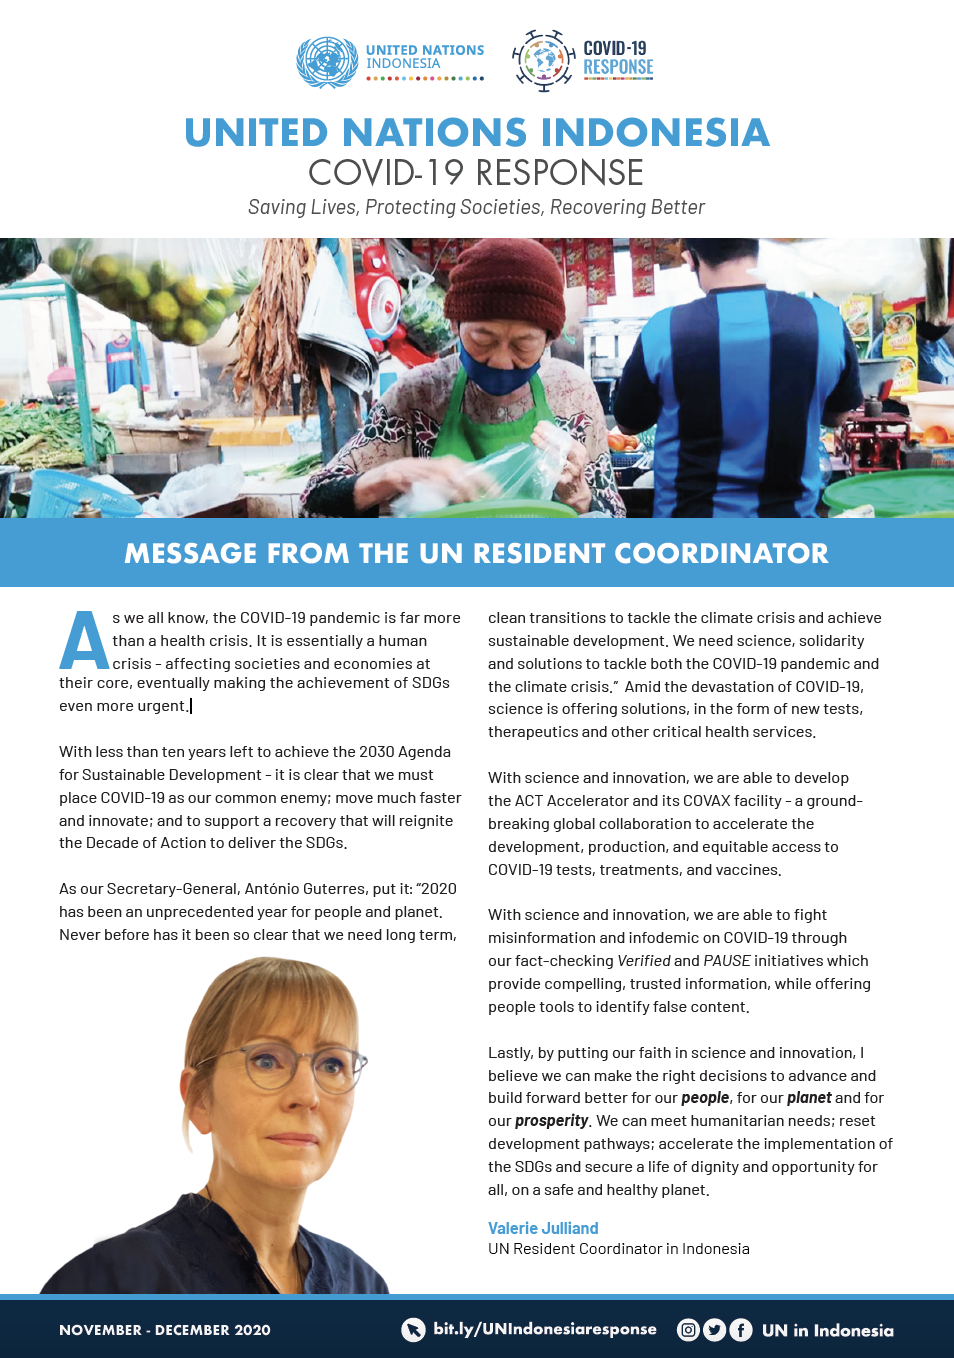 UN in Indonesia COVID-19 Response Newsletter December 2020